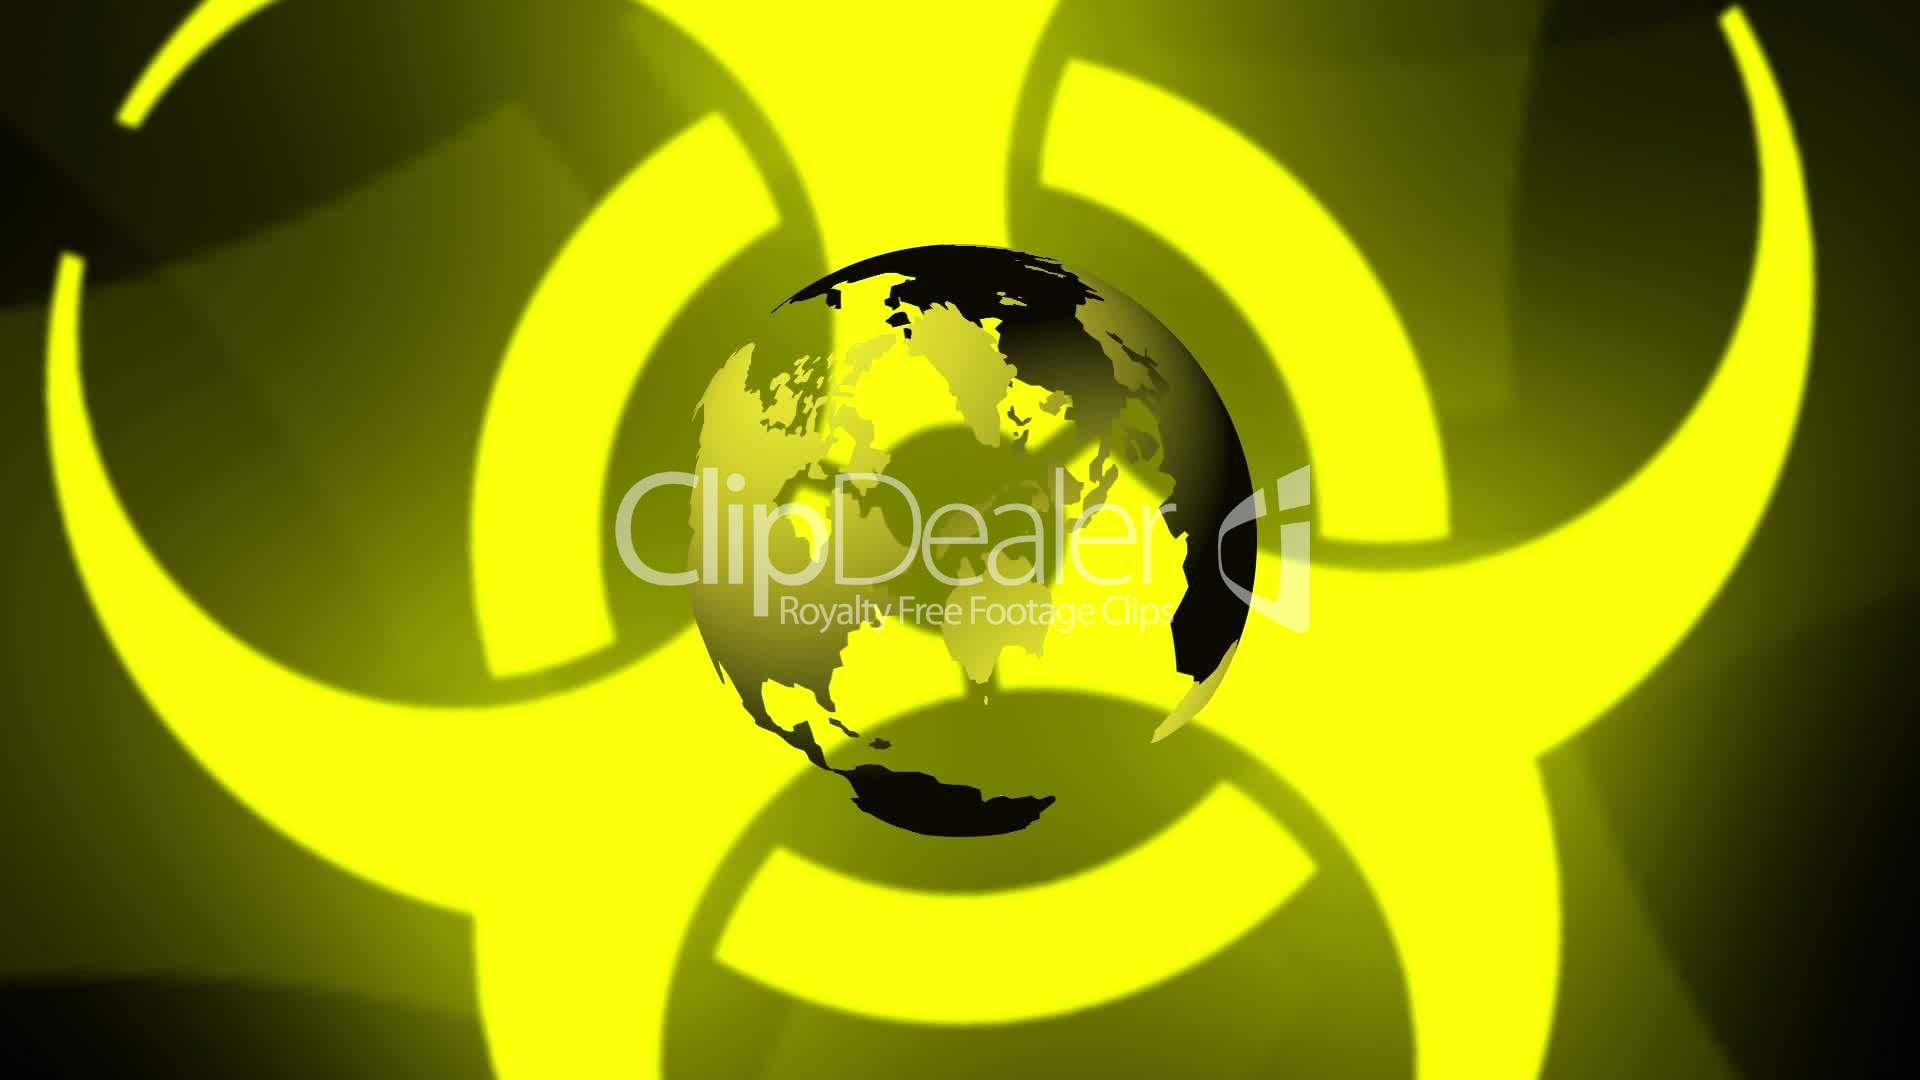 Pulsing Biohazard Symbol With Earth Royalty Free Video And Stock